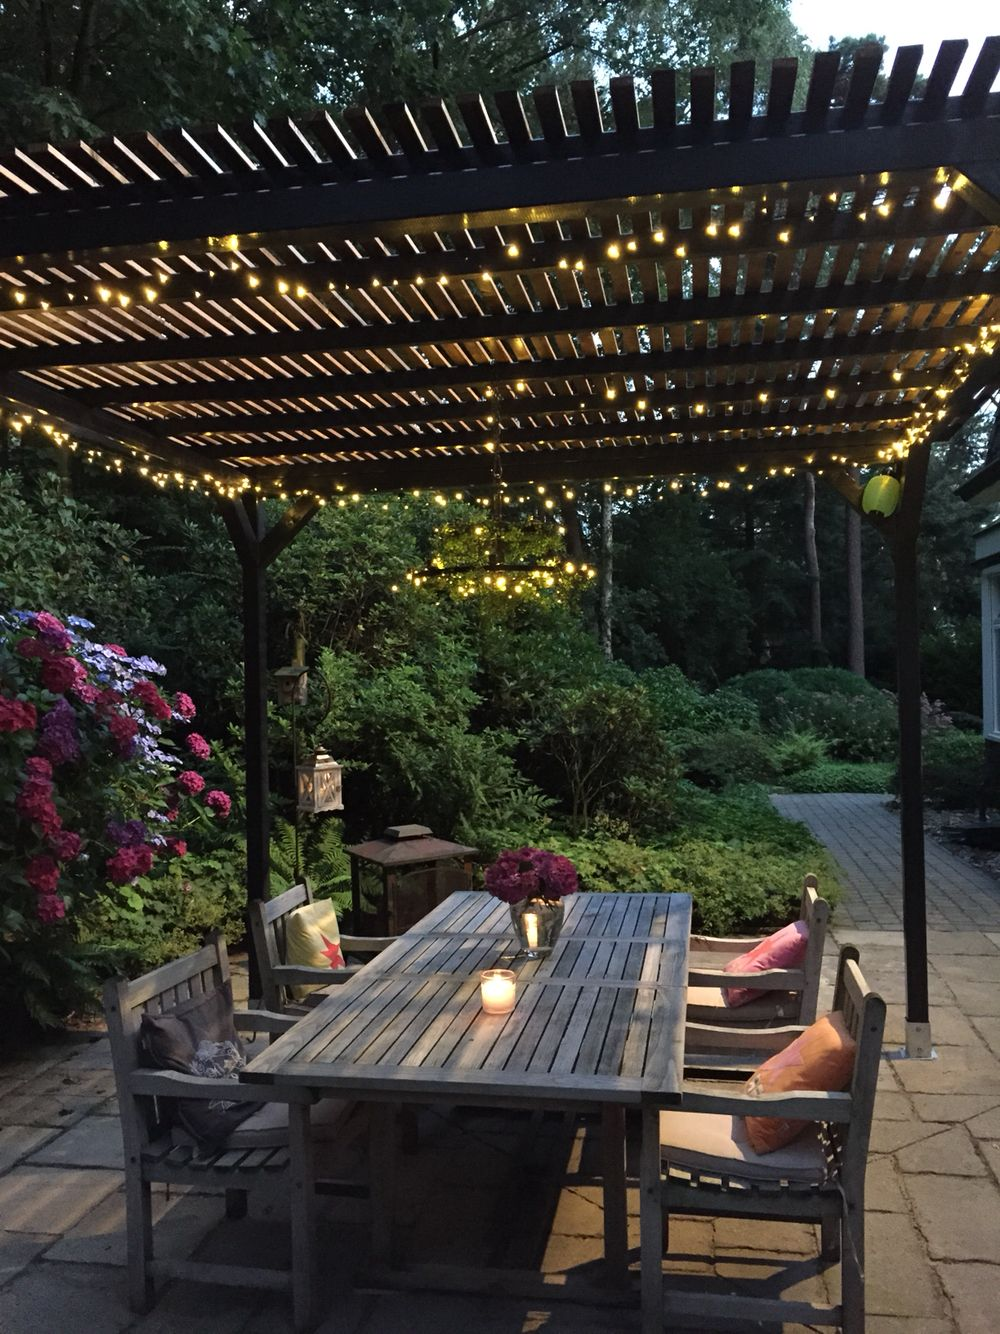 Dream Pergola With Fairy Lights Chandelier Self Made Outdoor